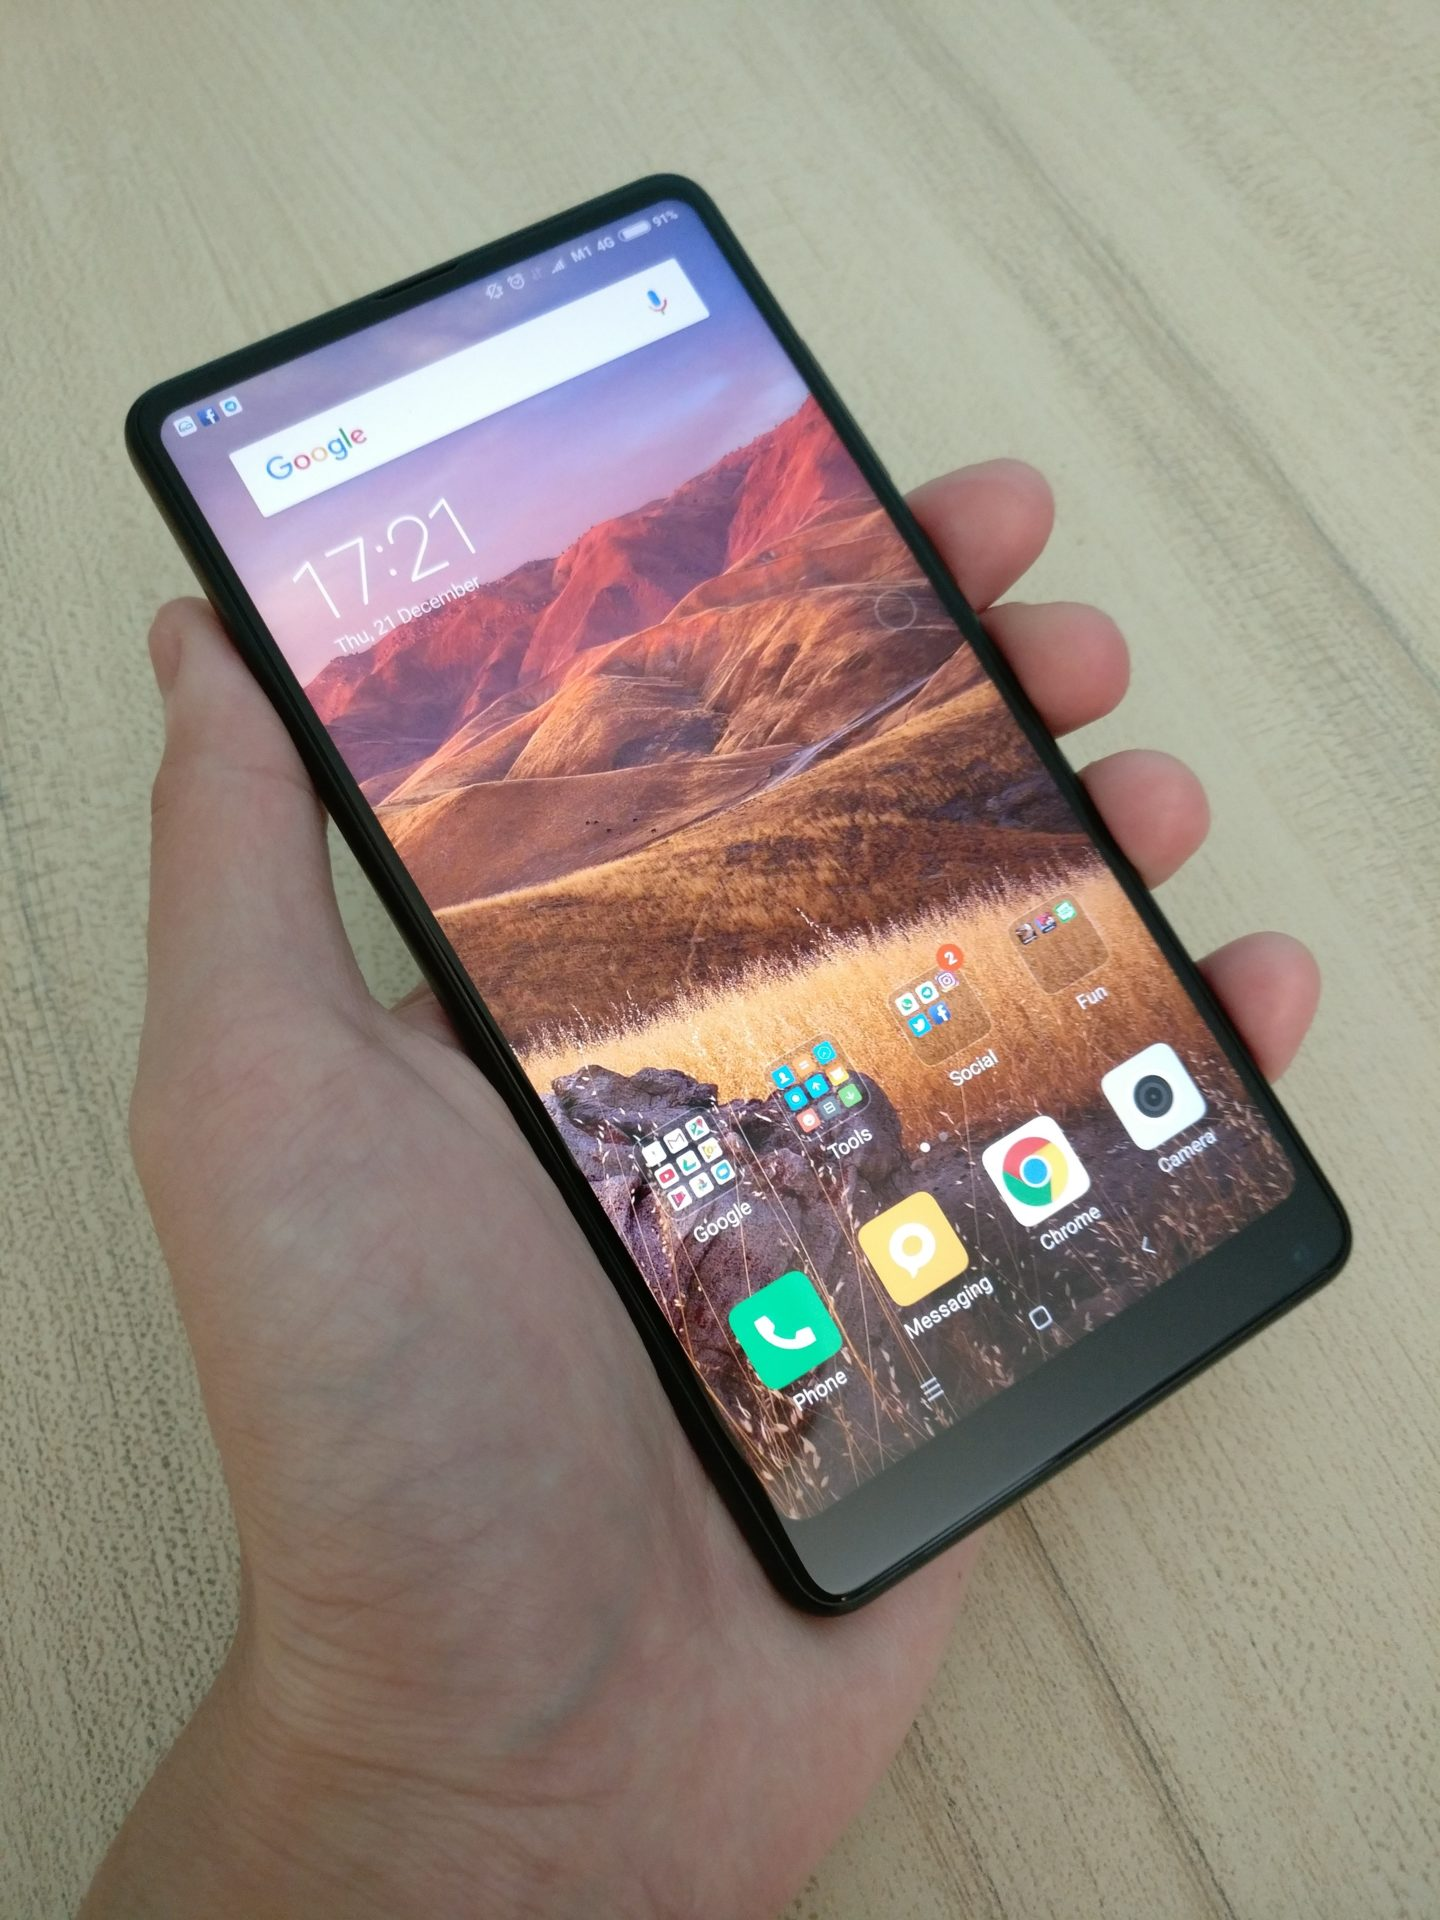 Goondu Review Xiaomi Mi Mix 2 Is Stylish Affordable But Has Some Charger Oppo Asus Zenfone Smartfren Andromax Flaws Techgoondu